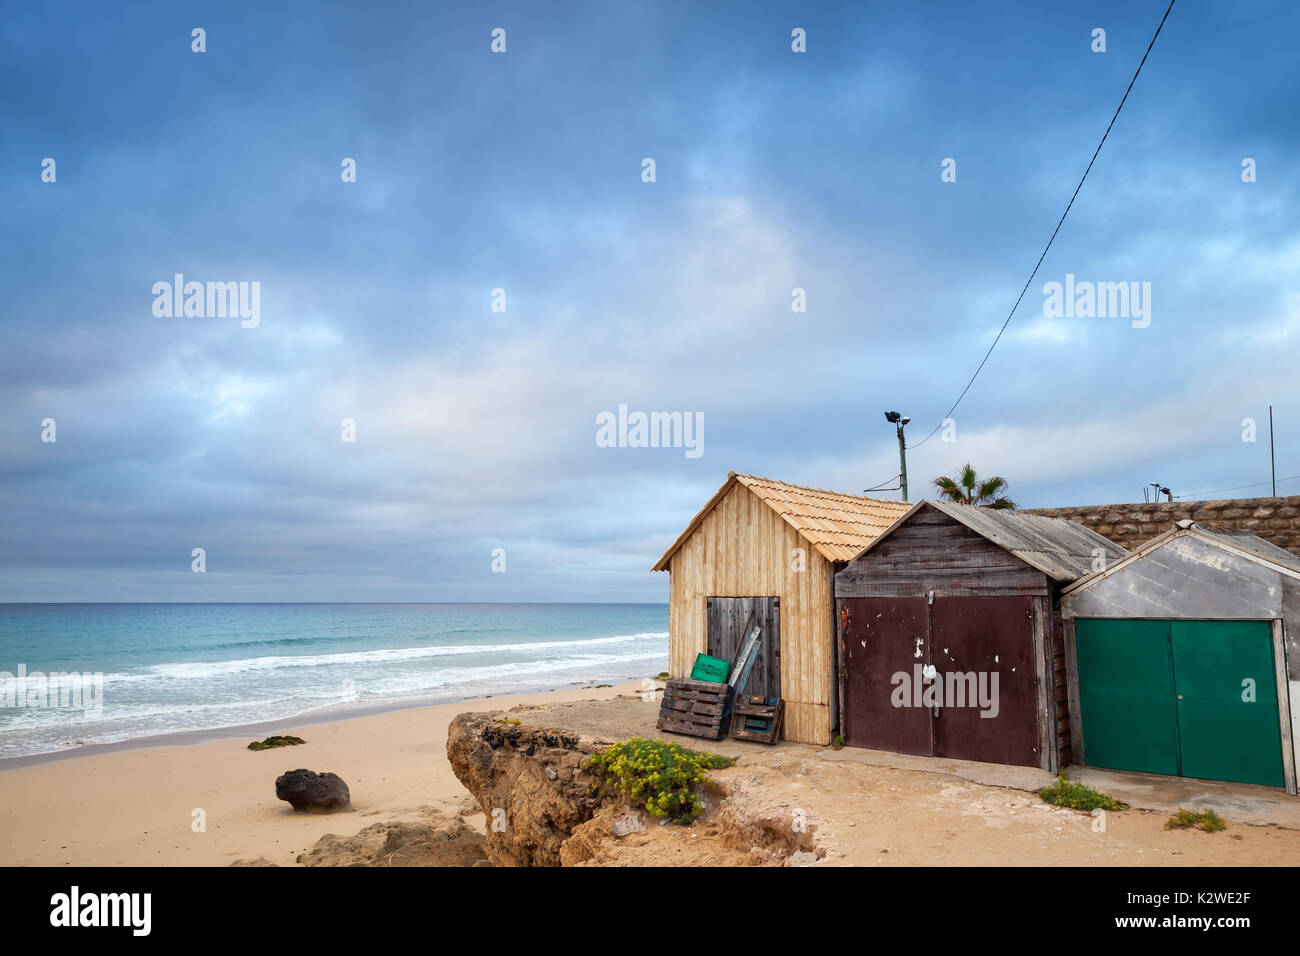 Coastal barns on the beach of Porto Santo island in the Madeira archipelago, Portugal - Stock Image